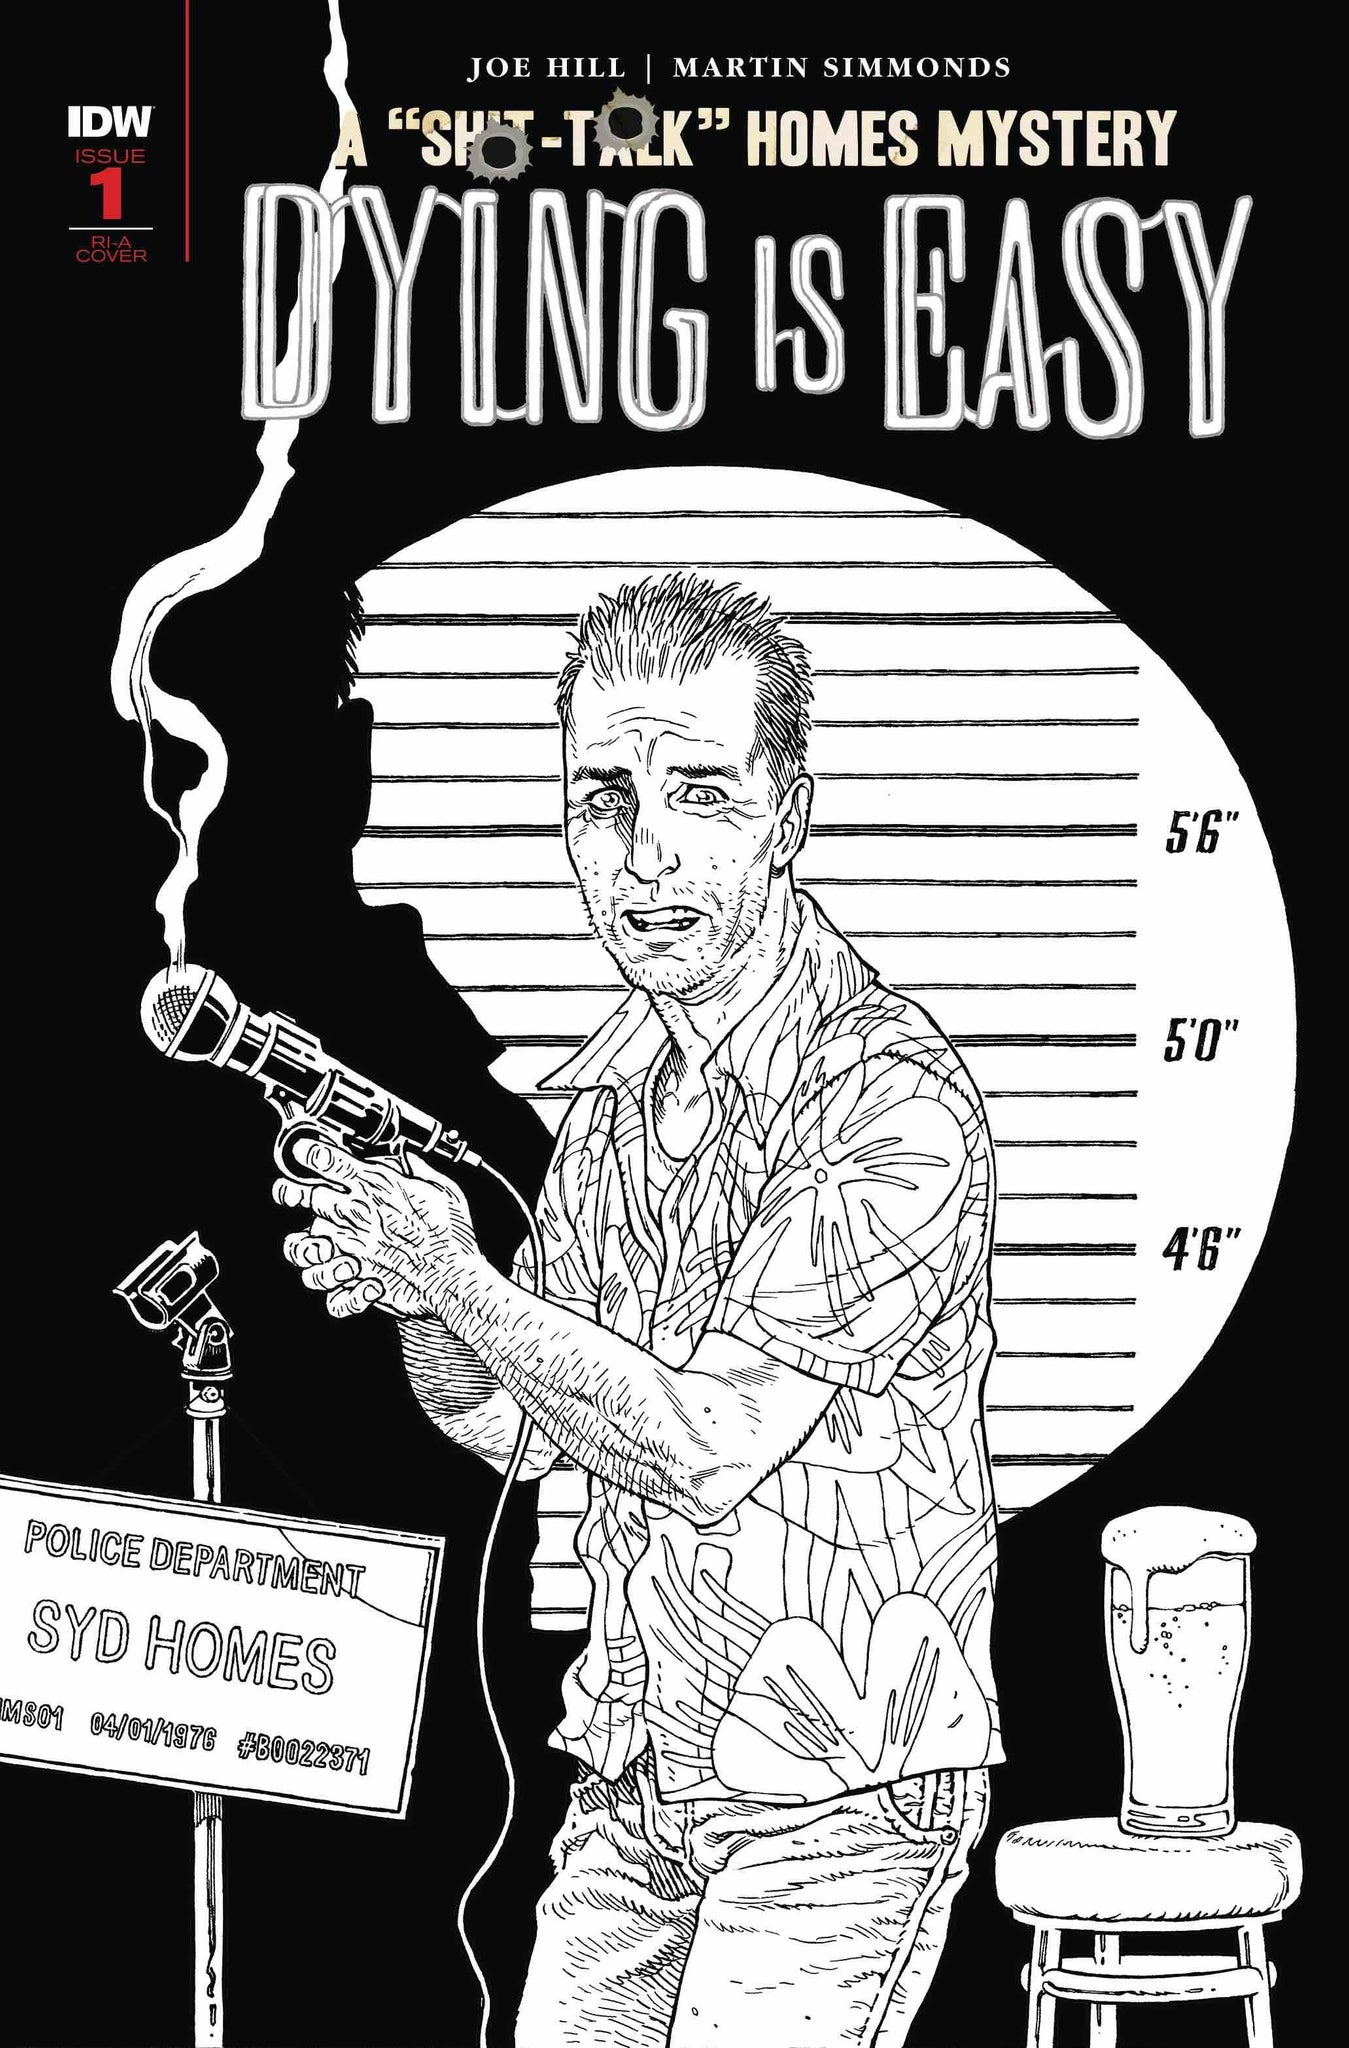 Dying Is Easy (2019) #1 (of 5) Black & White Gabriel Rodriguez Variant